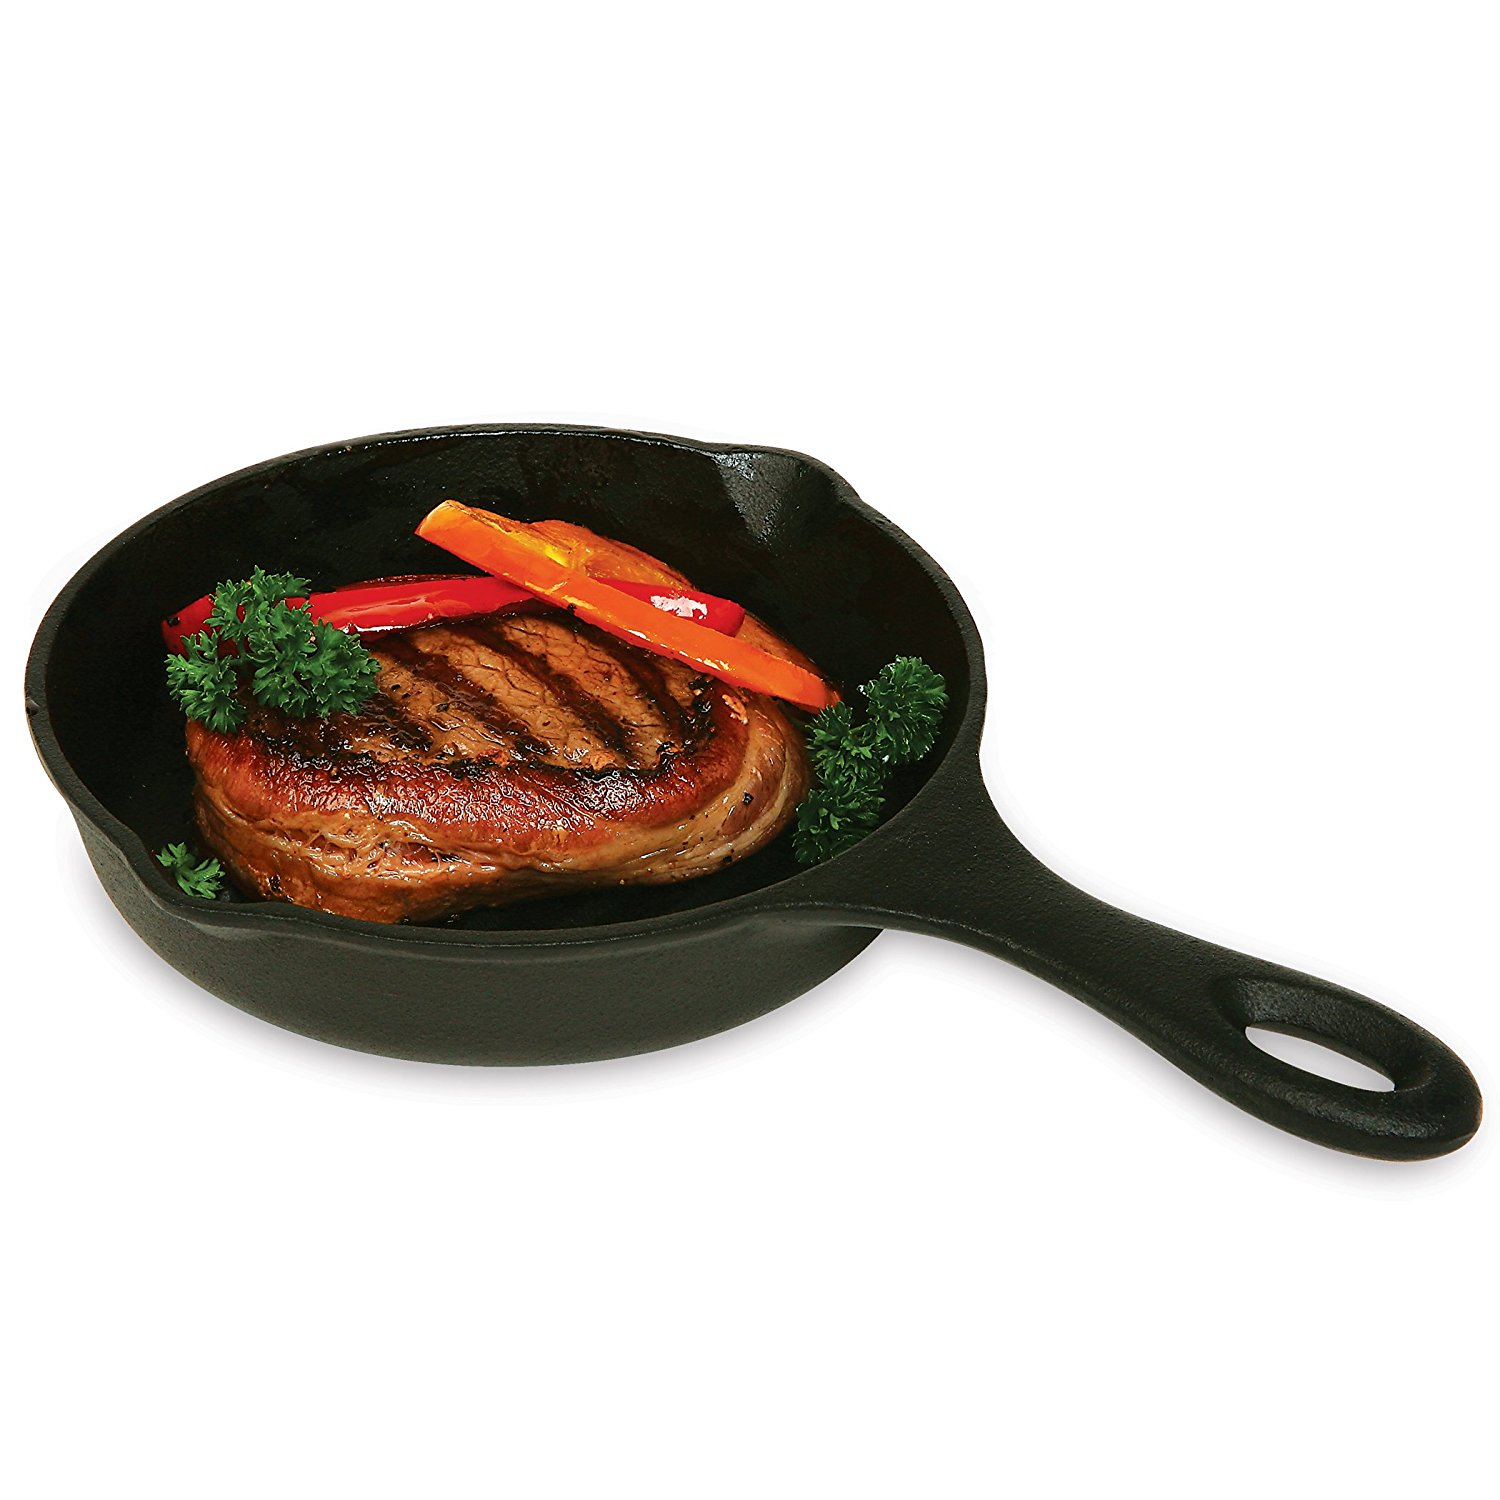 Pre-Seasoned Cast Iron 6.75 Inch Round Grill Pan, By Norpro